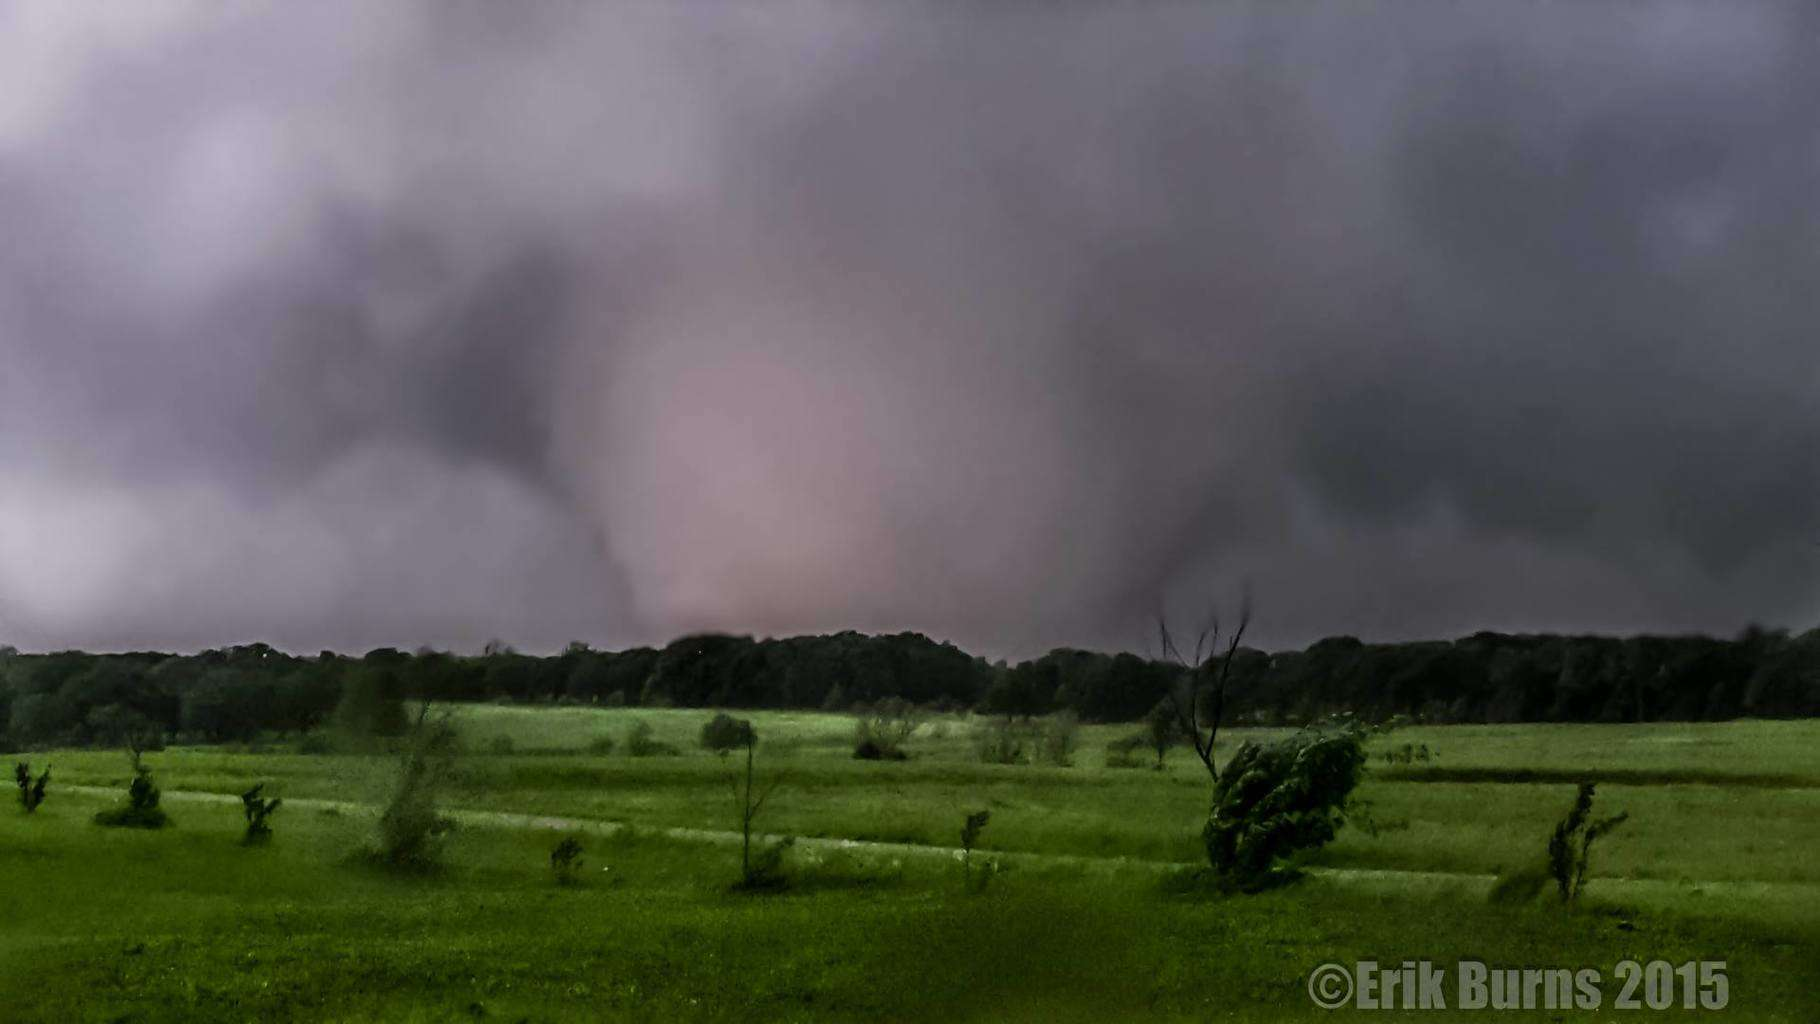 Today is May 3, 2015. On this date in 1999 a terrible F5 tornado struck Moore, Oklahoma. Let's never forget the destruction and lives that are lost from these large violent tornadoes. Something so breathtaking, but yet so deadly. Here is my shot of a violent tornado from May 19, 2013. Shawnee, Oklahoma. We assisted with search and rescue immediately after the tornado passed.